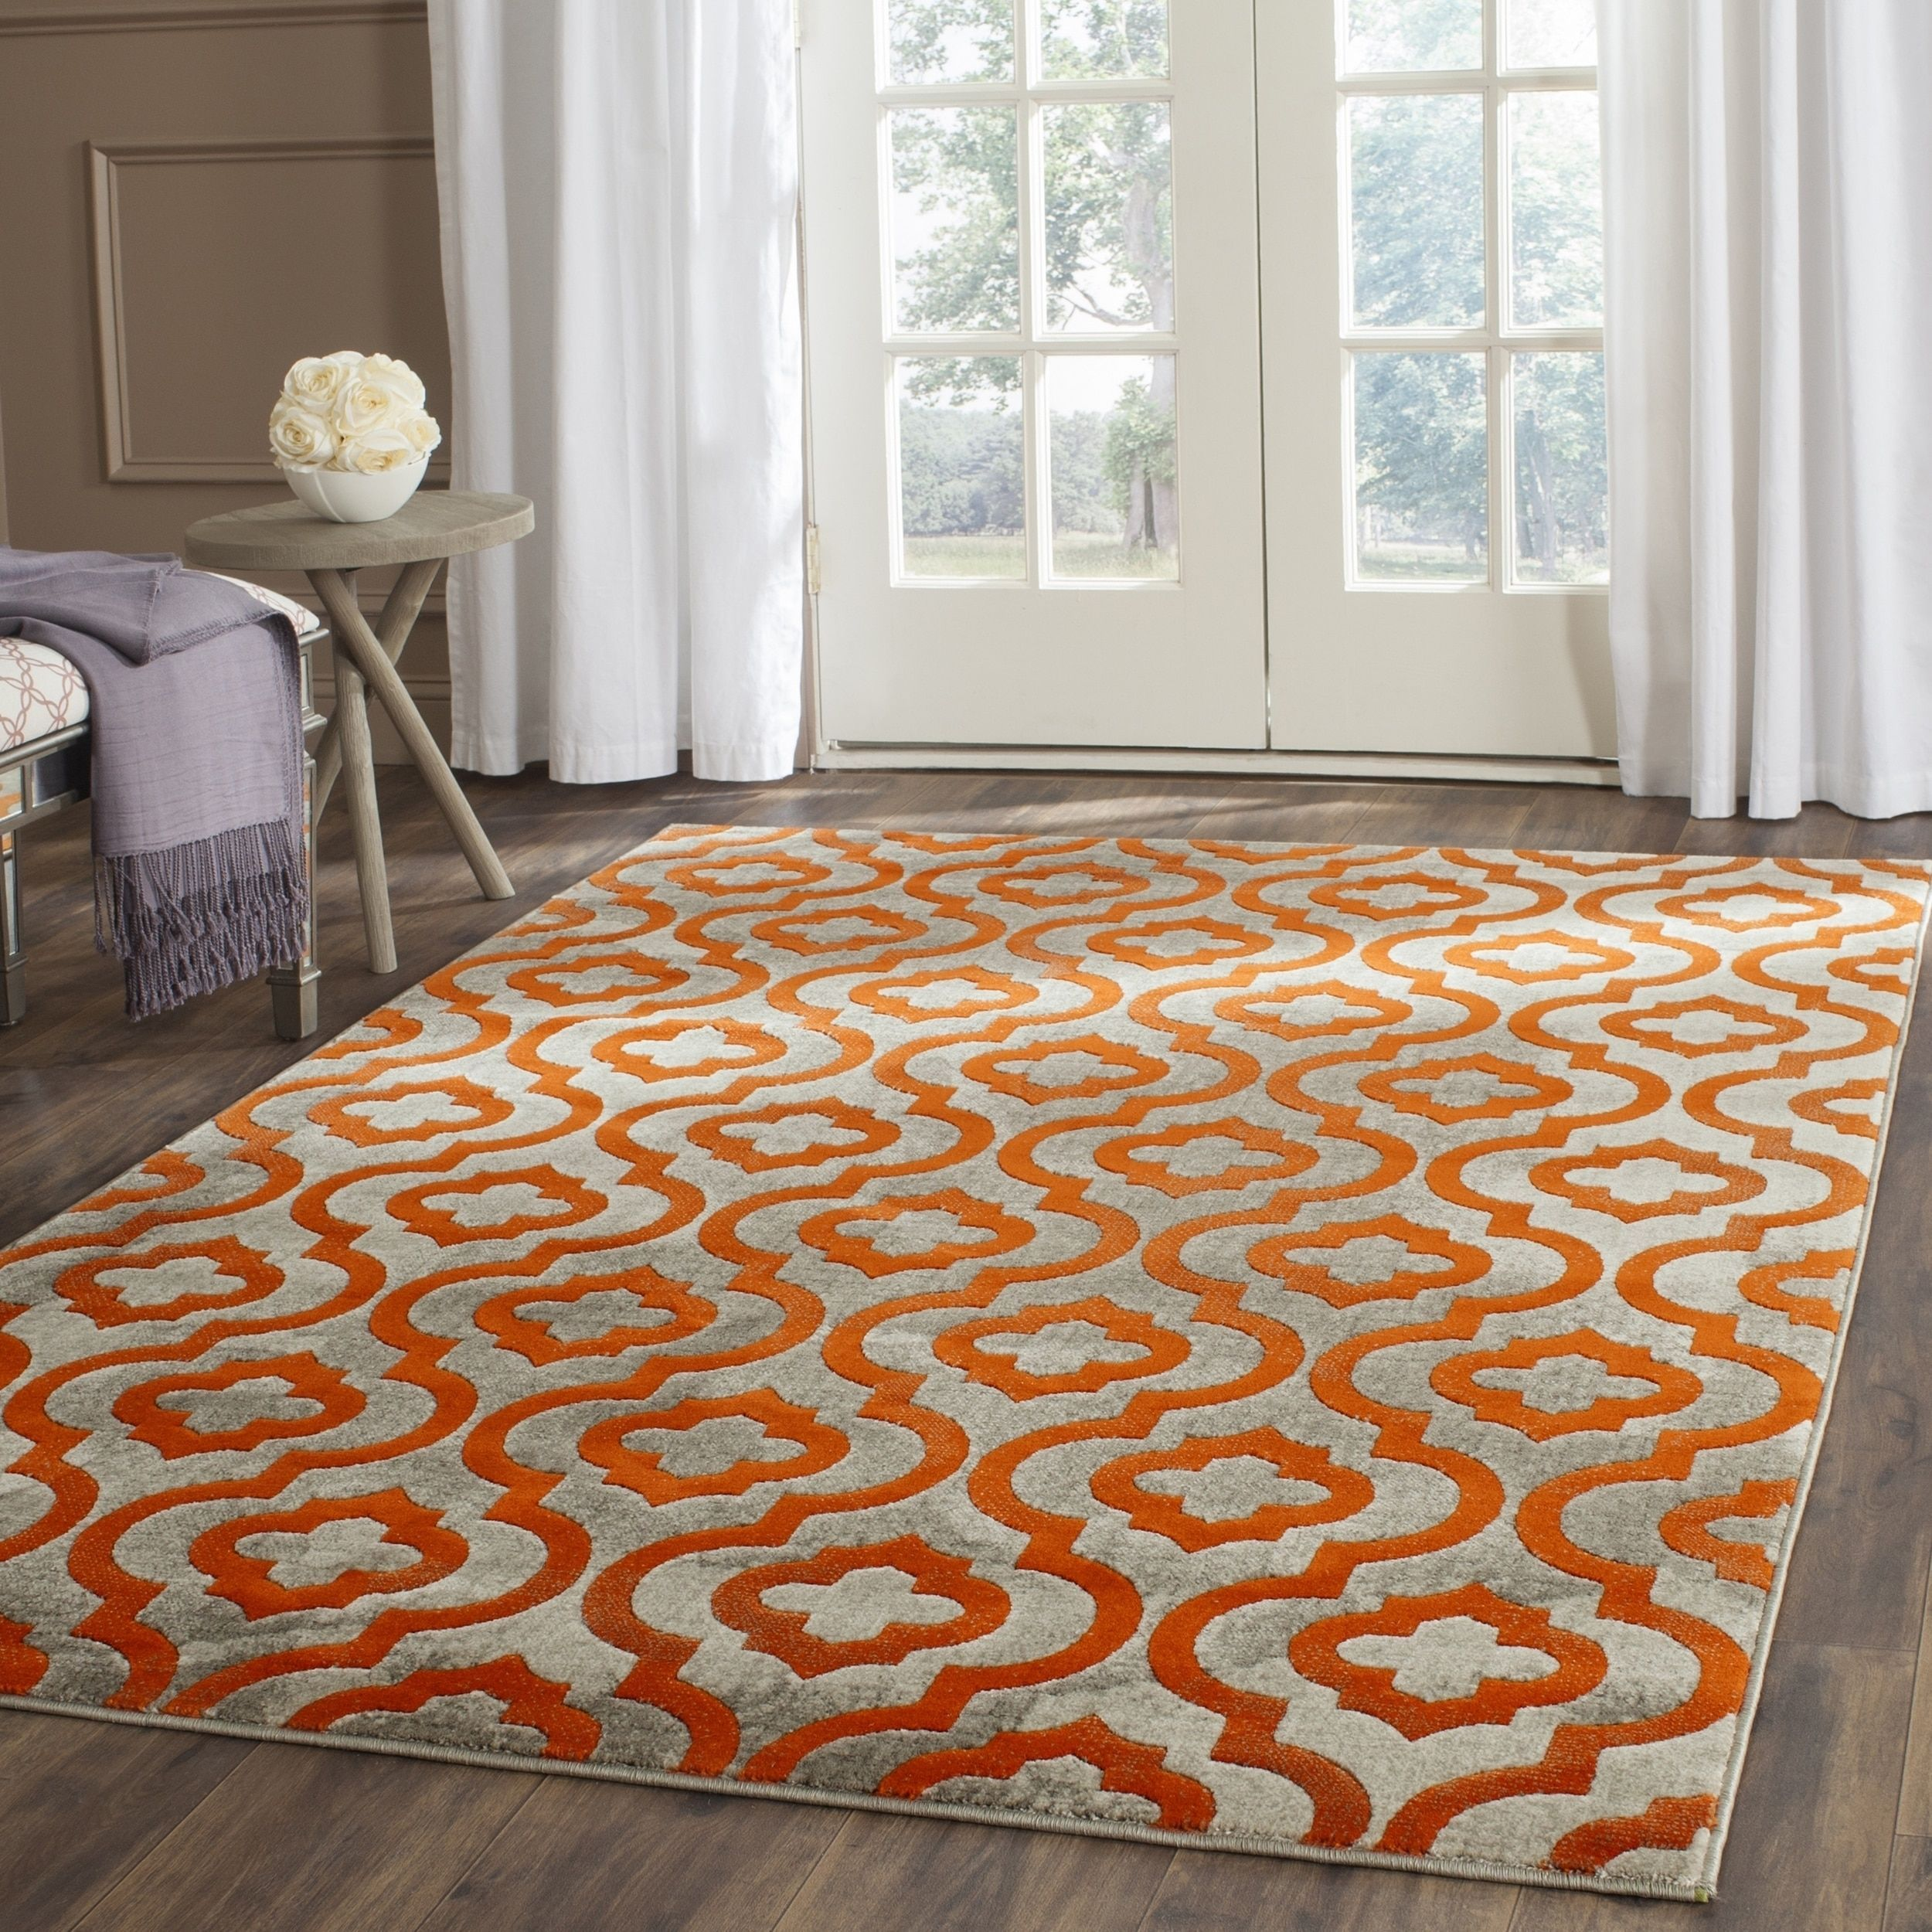 Safavieh Porcello Sanije Modern Moroccan Rug Orange Rugs Living